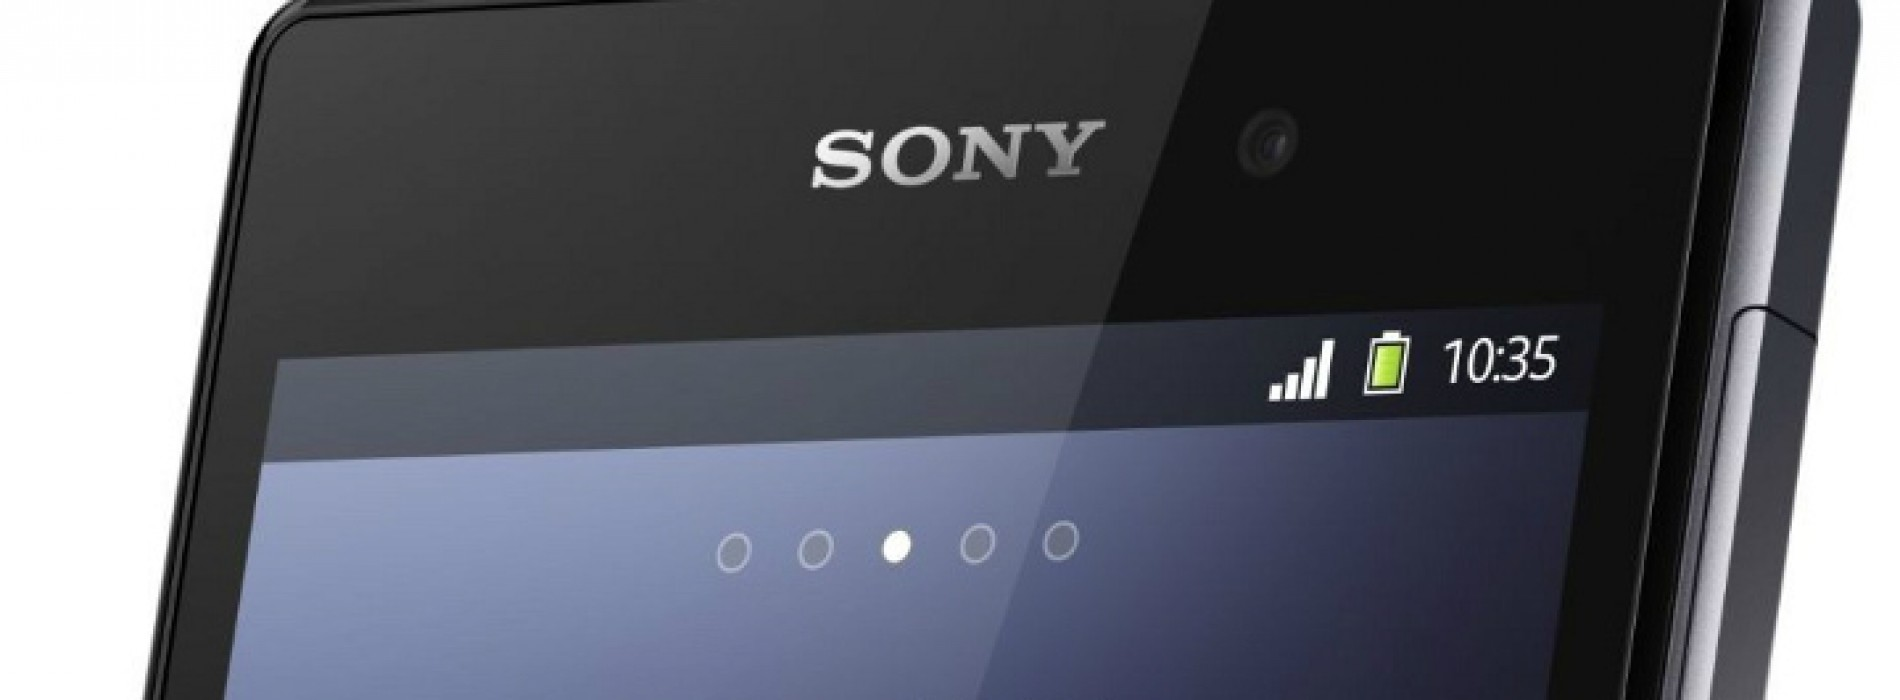 Sony intros flagship Xperia Z1 at IFA